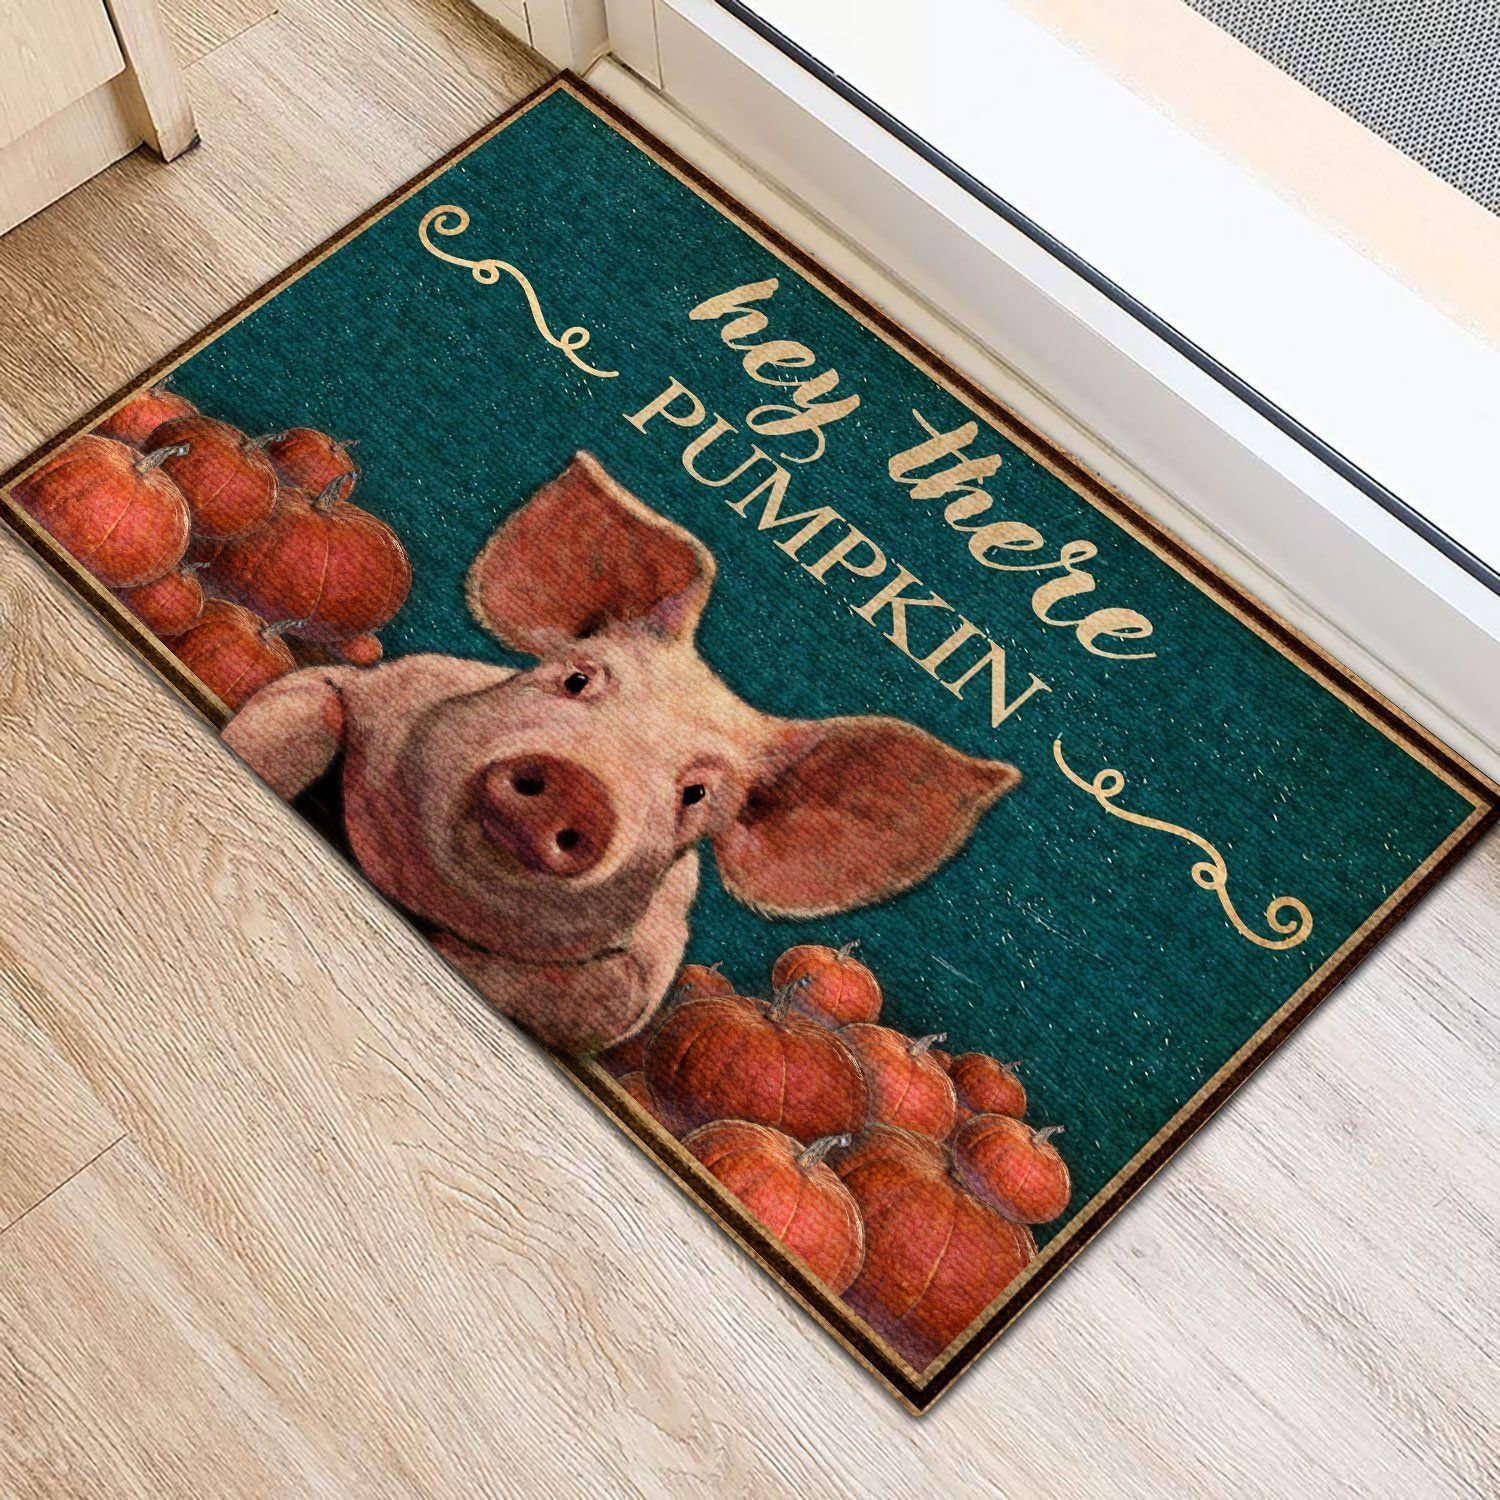 Hey There Pumpkin Pig Doormat   Welcome Mat   House Warming Gift - 30 x 18 Inches